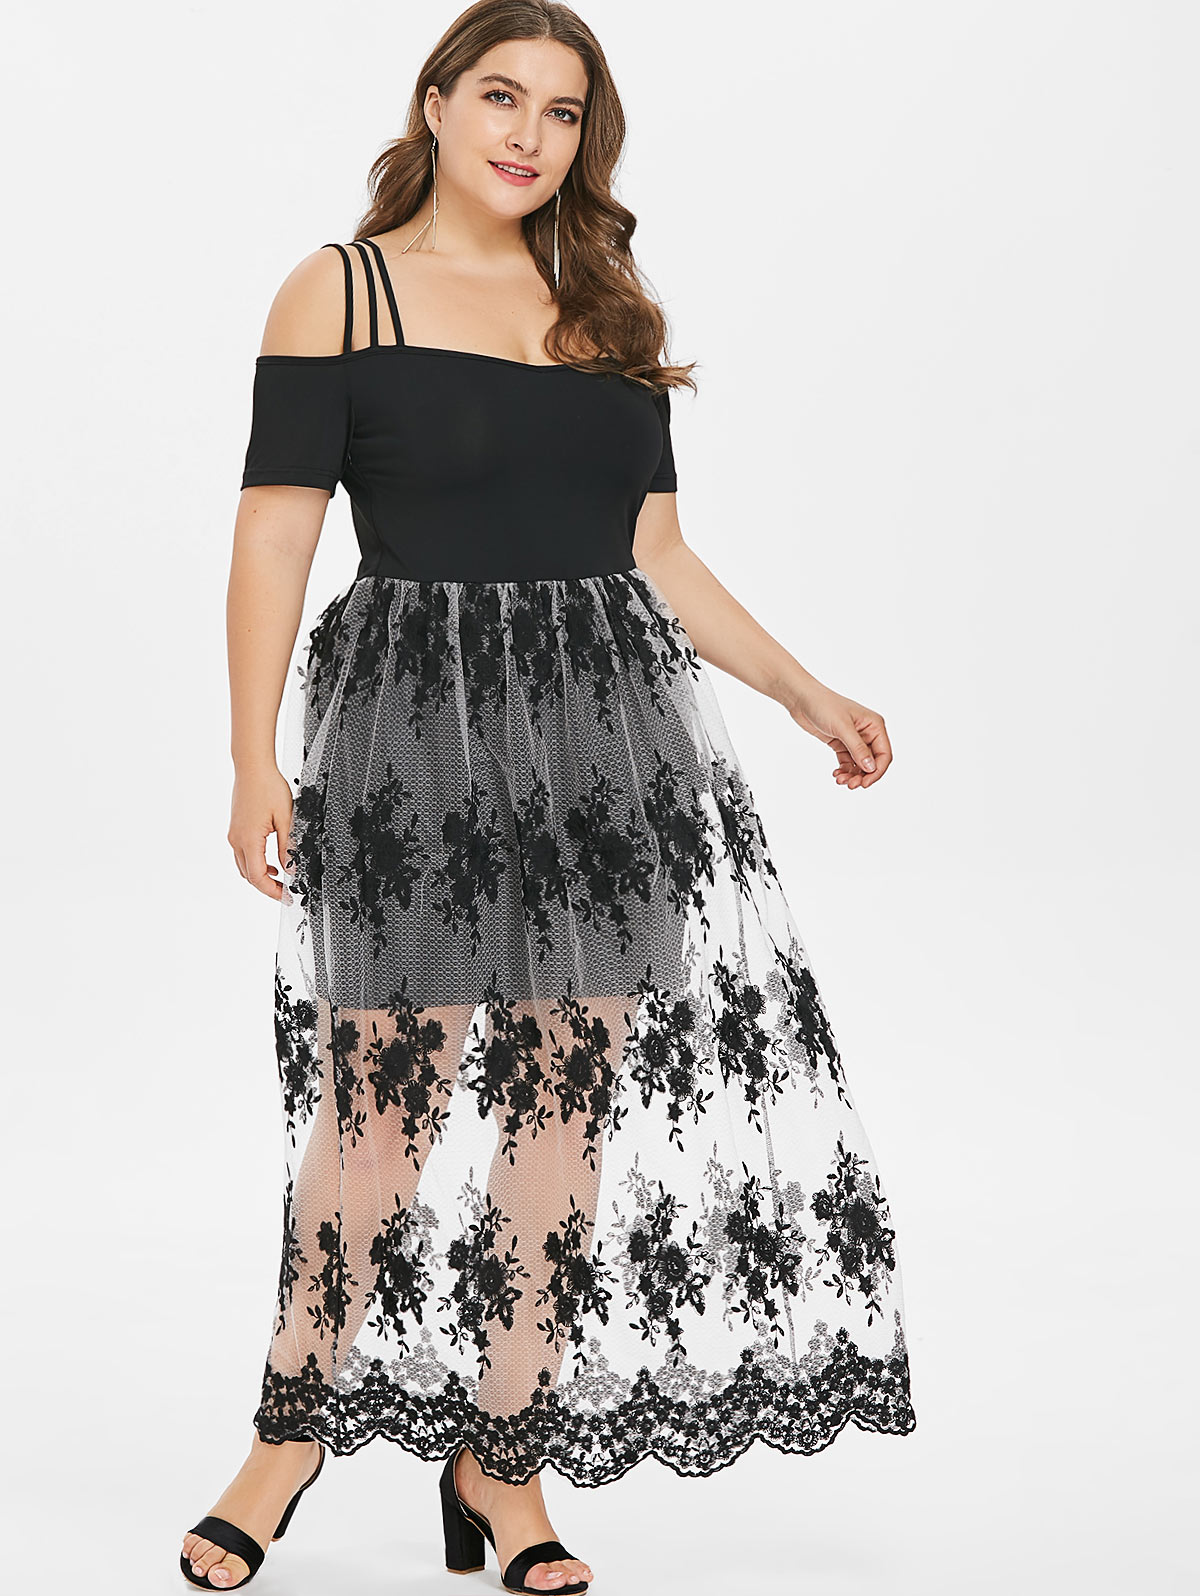 US $15.83 52% OFF|Wipalo Plus Size 5XL Floral Embroidery Scalloped Maxi  Dress Cold Shoulder Ankle Length See Through Spaghetti Strap Vestidos-in ...